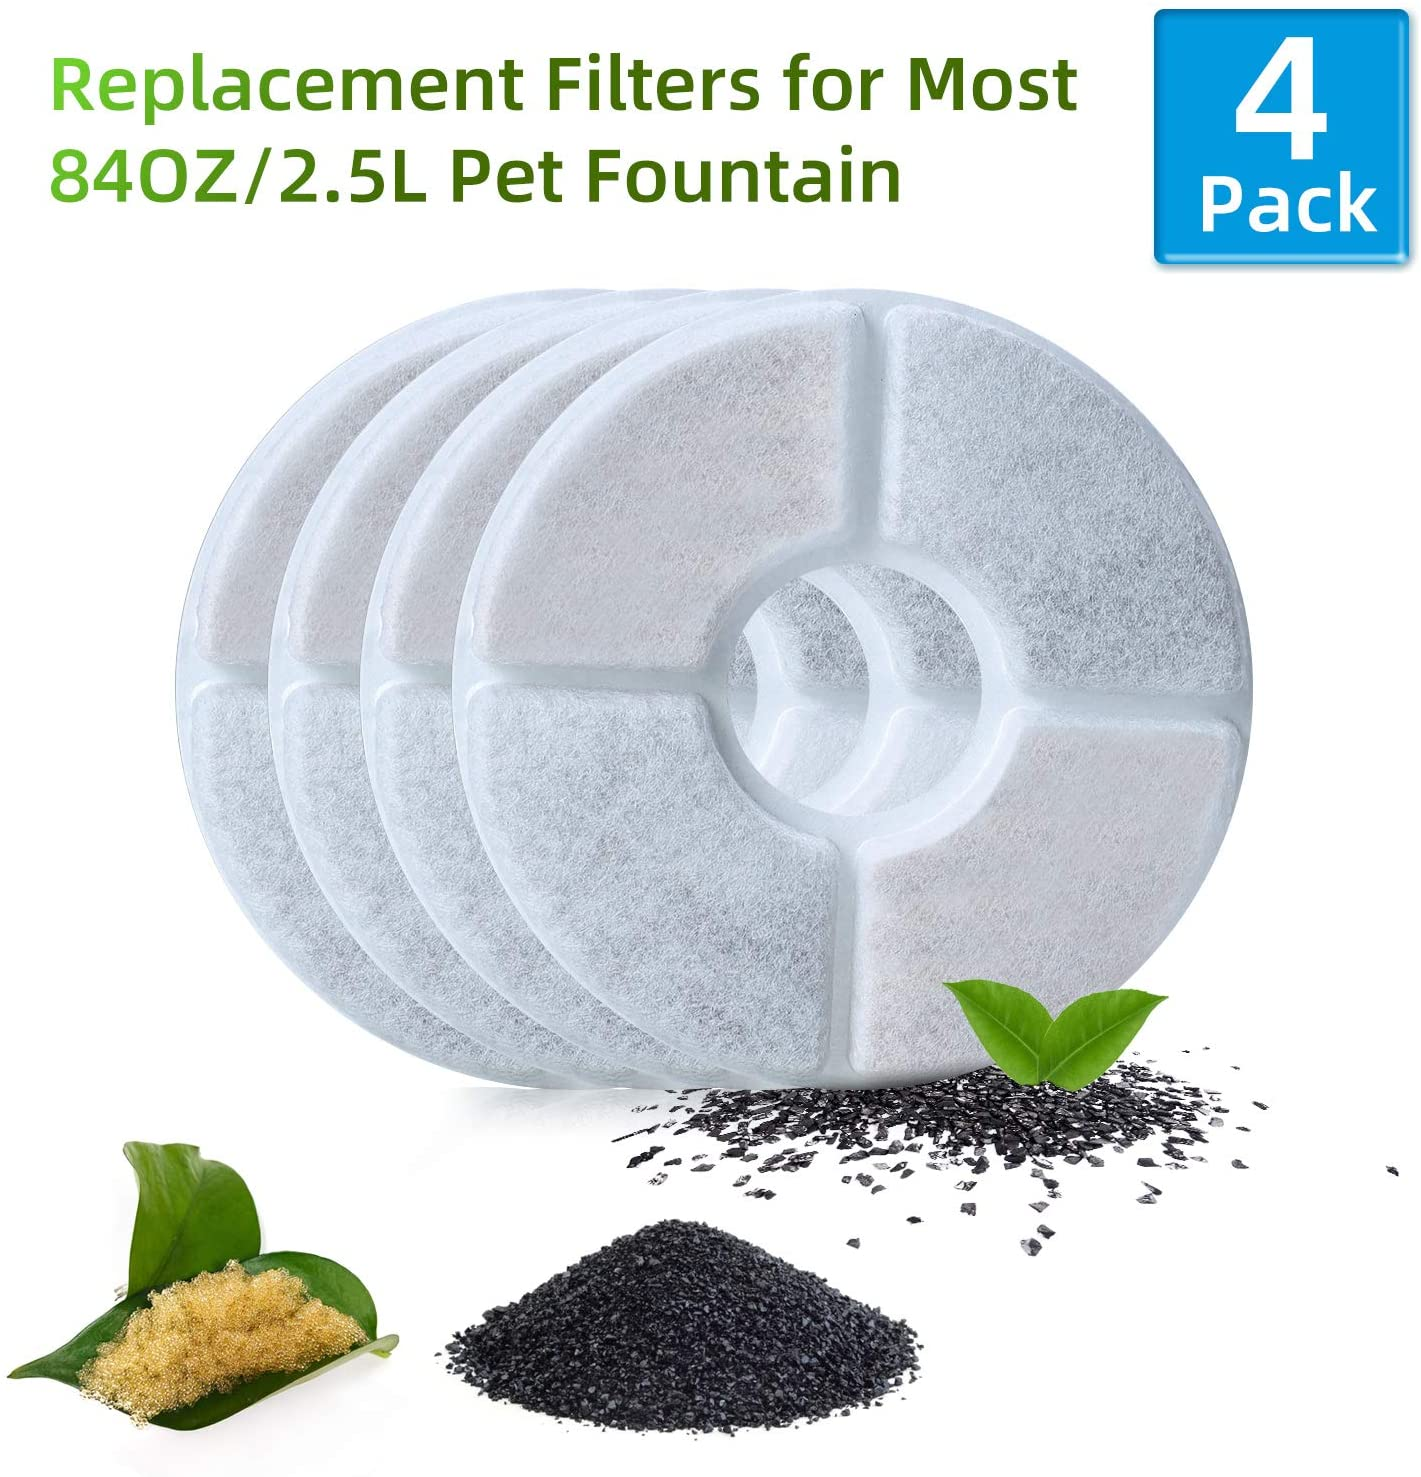 Pidsen Cat Water Fountain Filters, Pet Fountain Filter Triple Filtration System Replacement Filter, Concentrated Carbon Technology Filters for Automatic Flower Water Dispenser